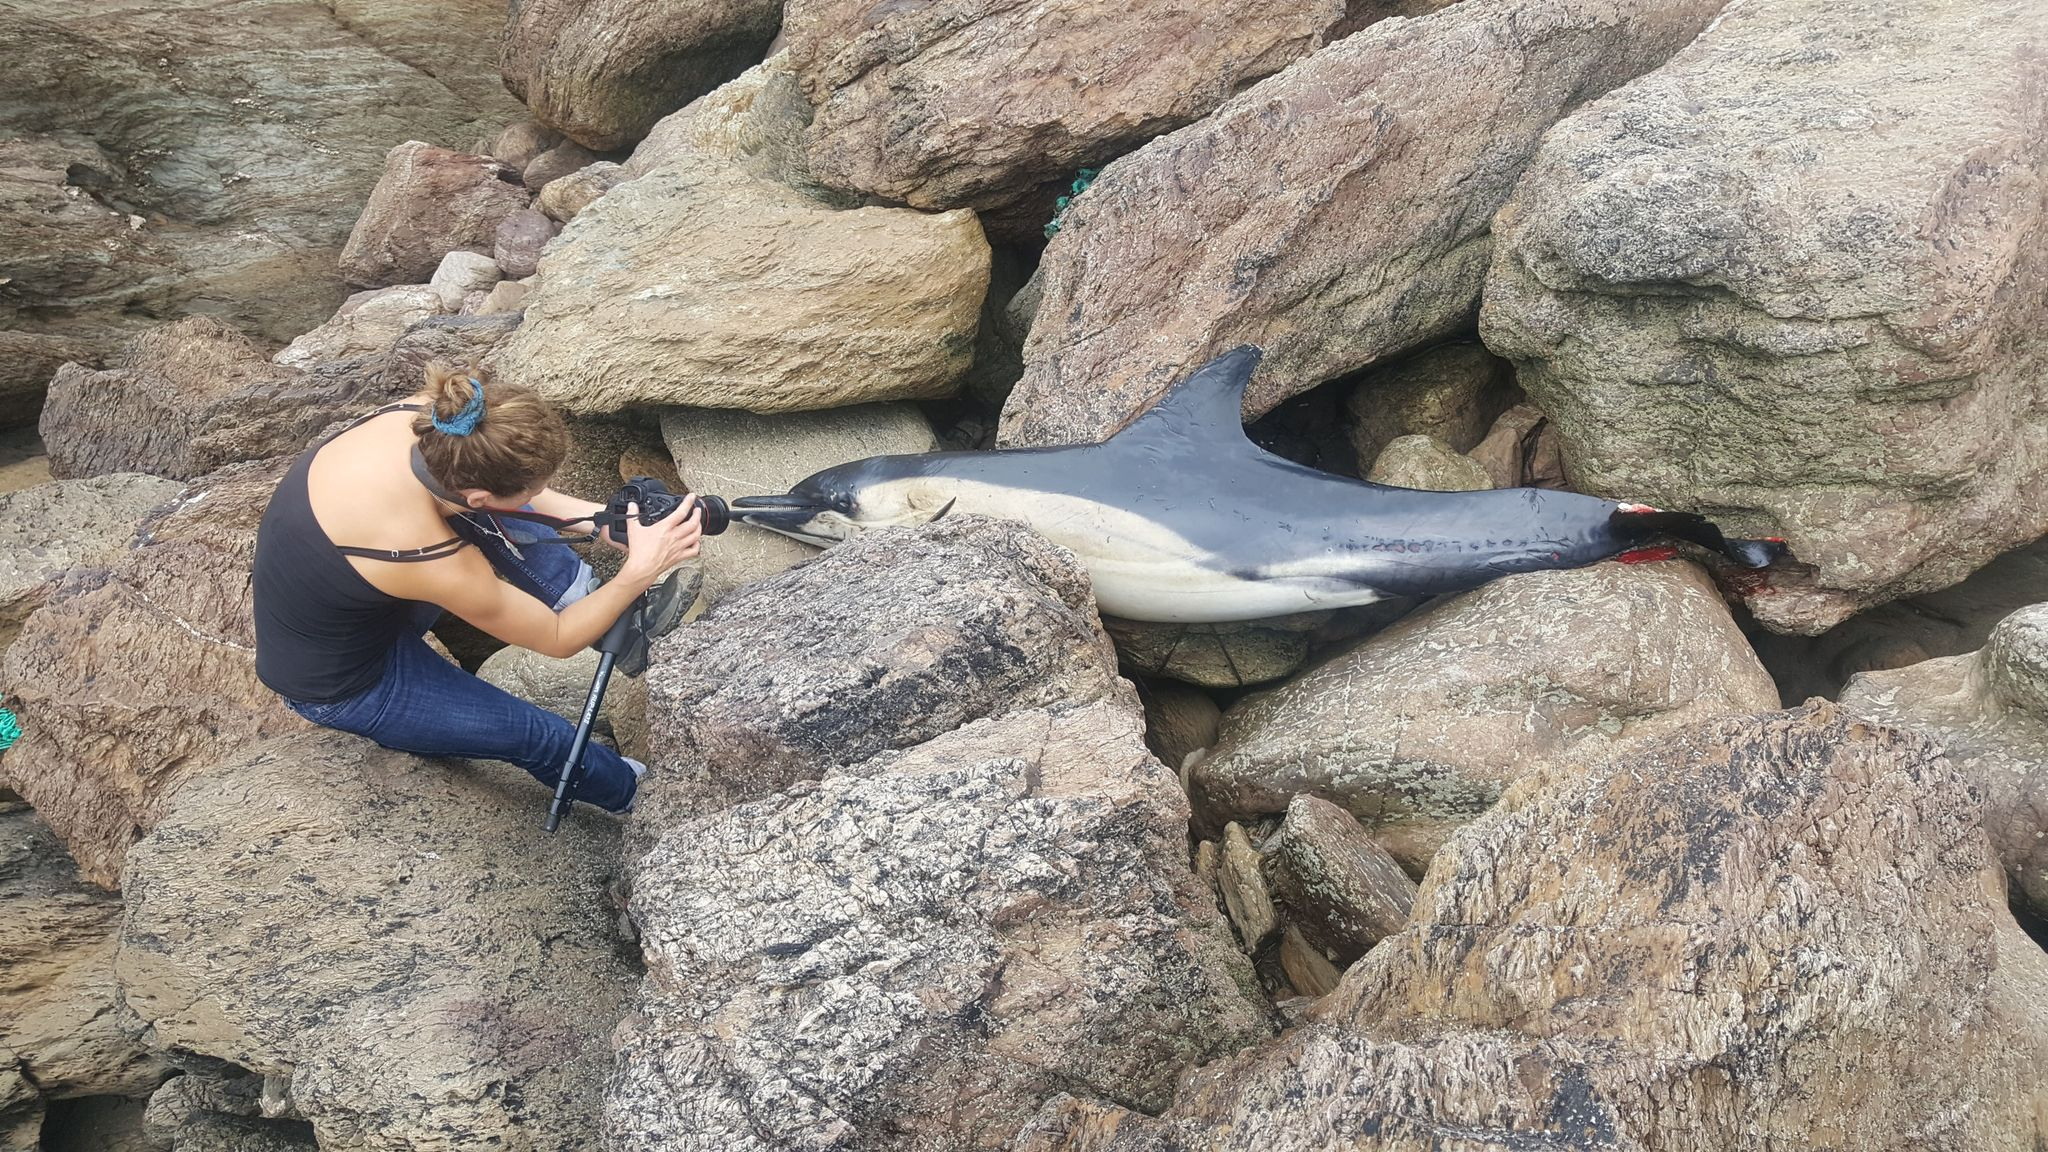 Cornwall Climate care gallery - dead dolphin